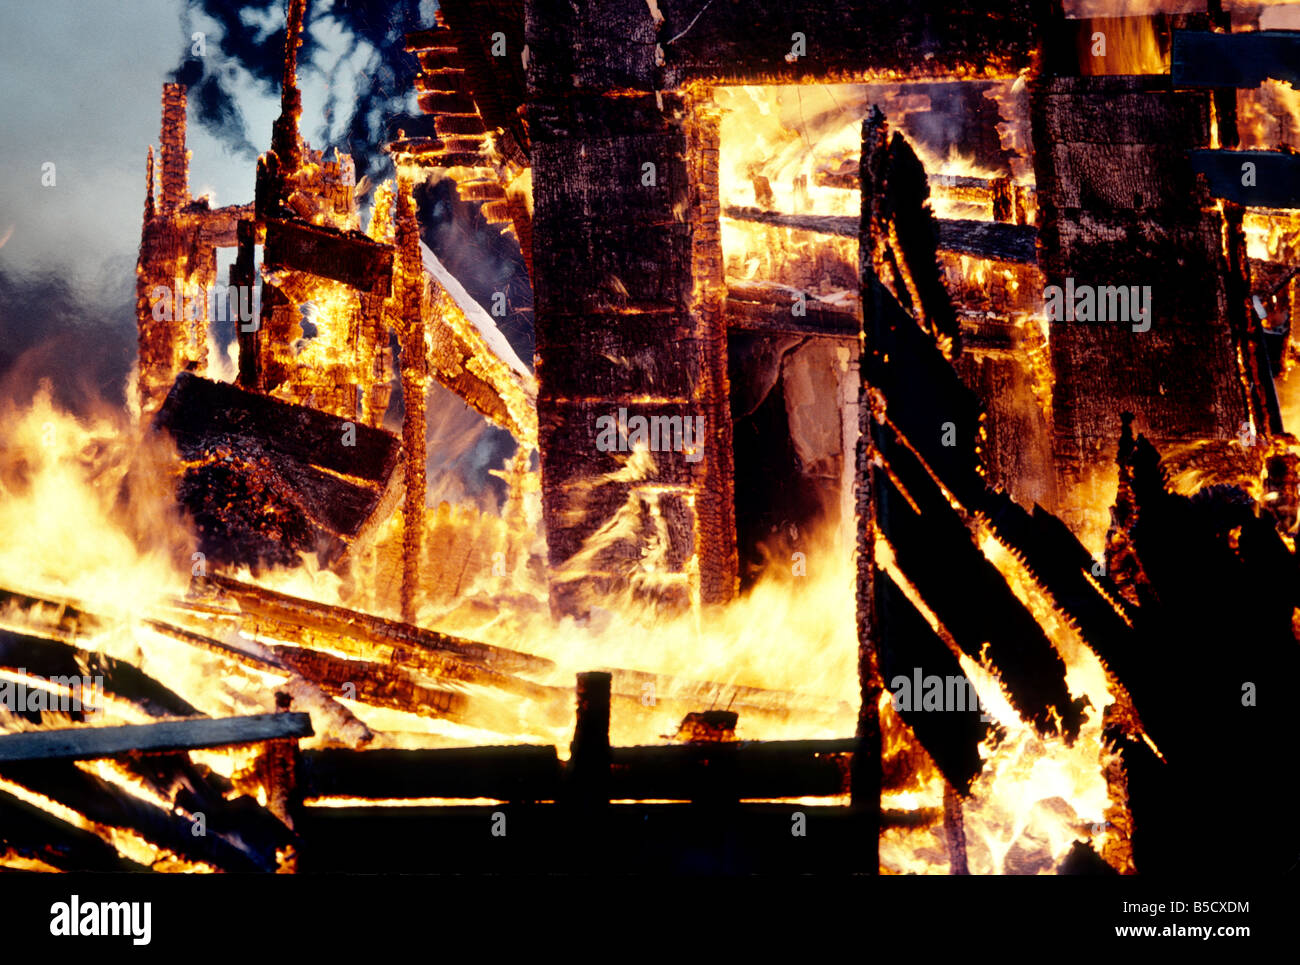 Inferno, flames consuming wood structure home. - Stock Image